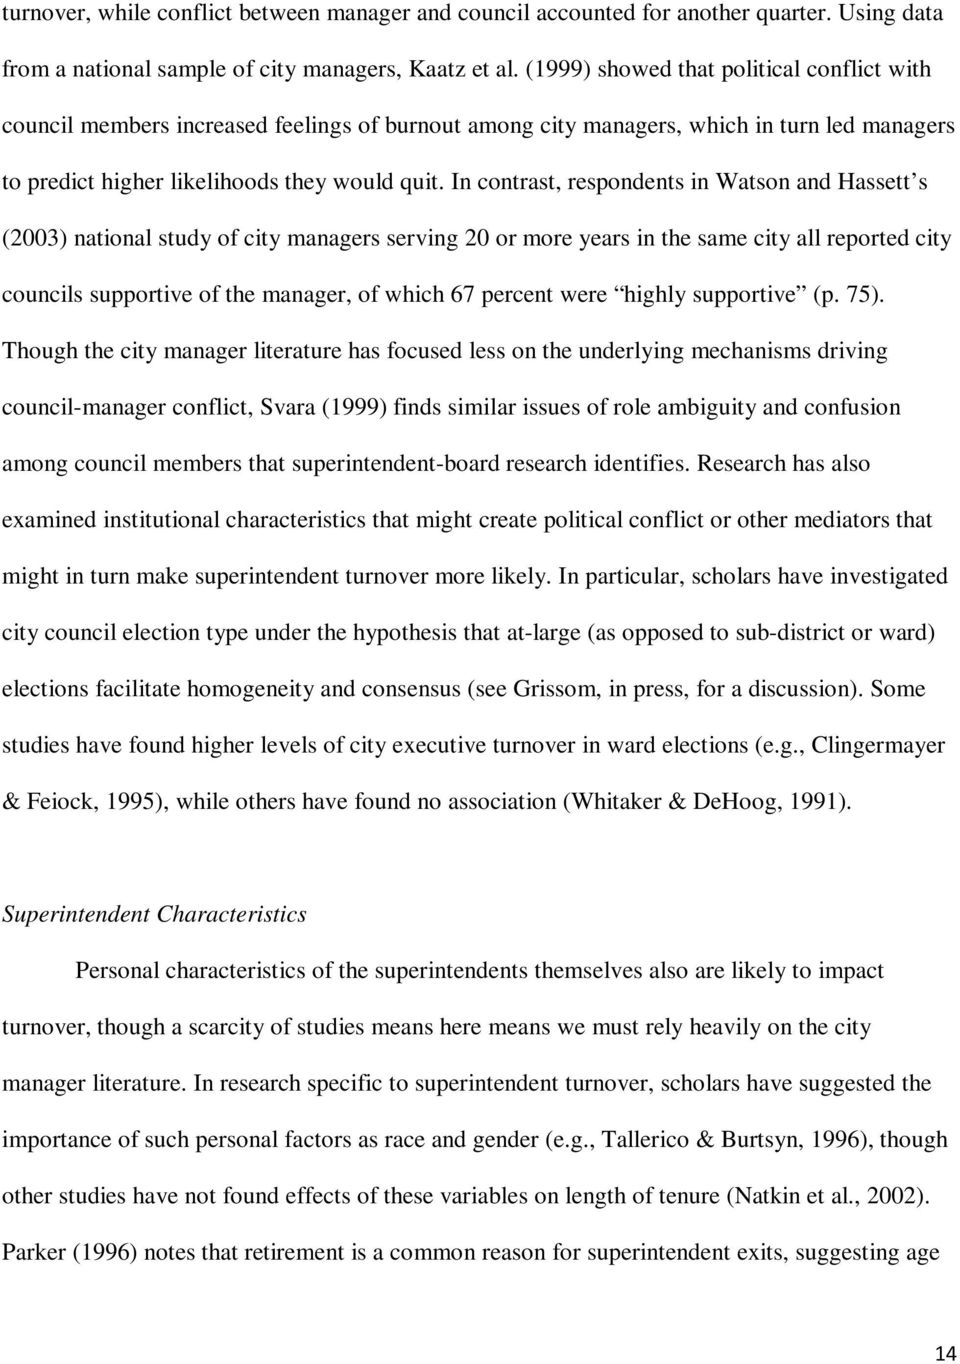 In contrast, respondents in Watson and Hassett s (2003) national study of city managers serving 20 or more years in the same city all reported city councils supportive of the manager, of which 67